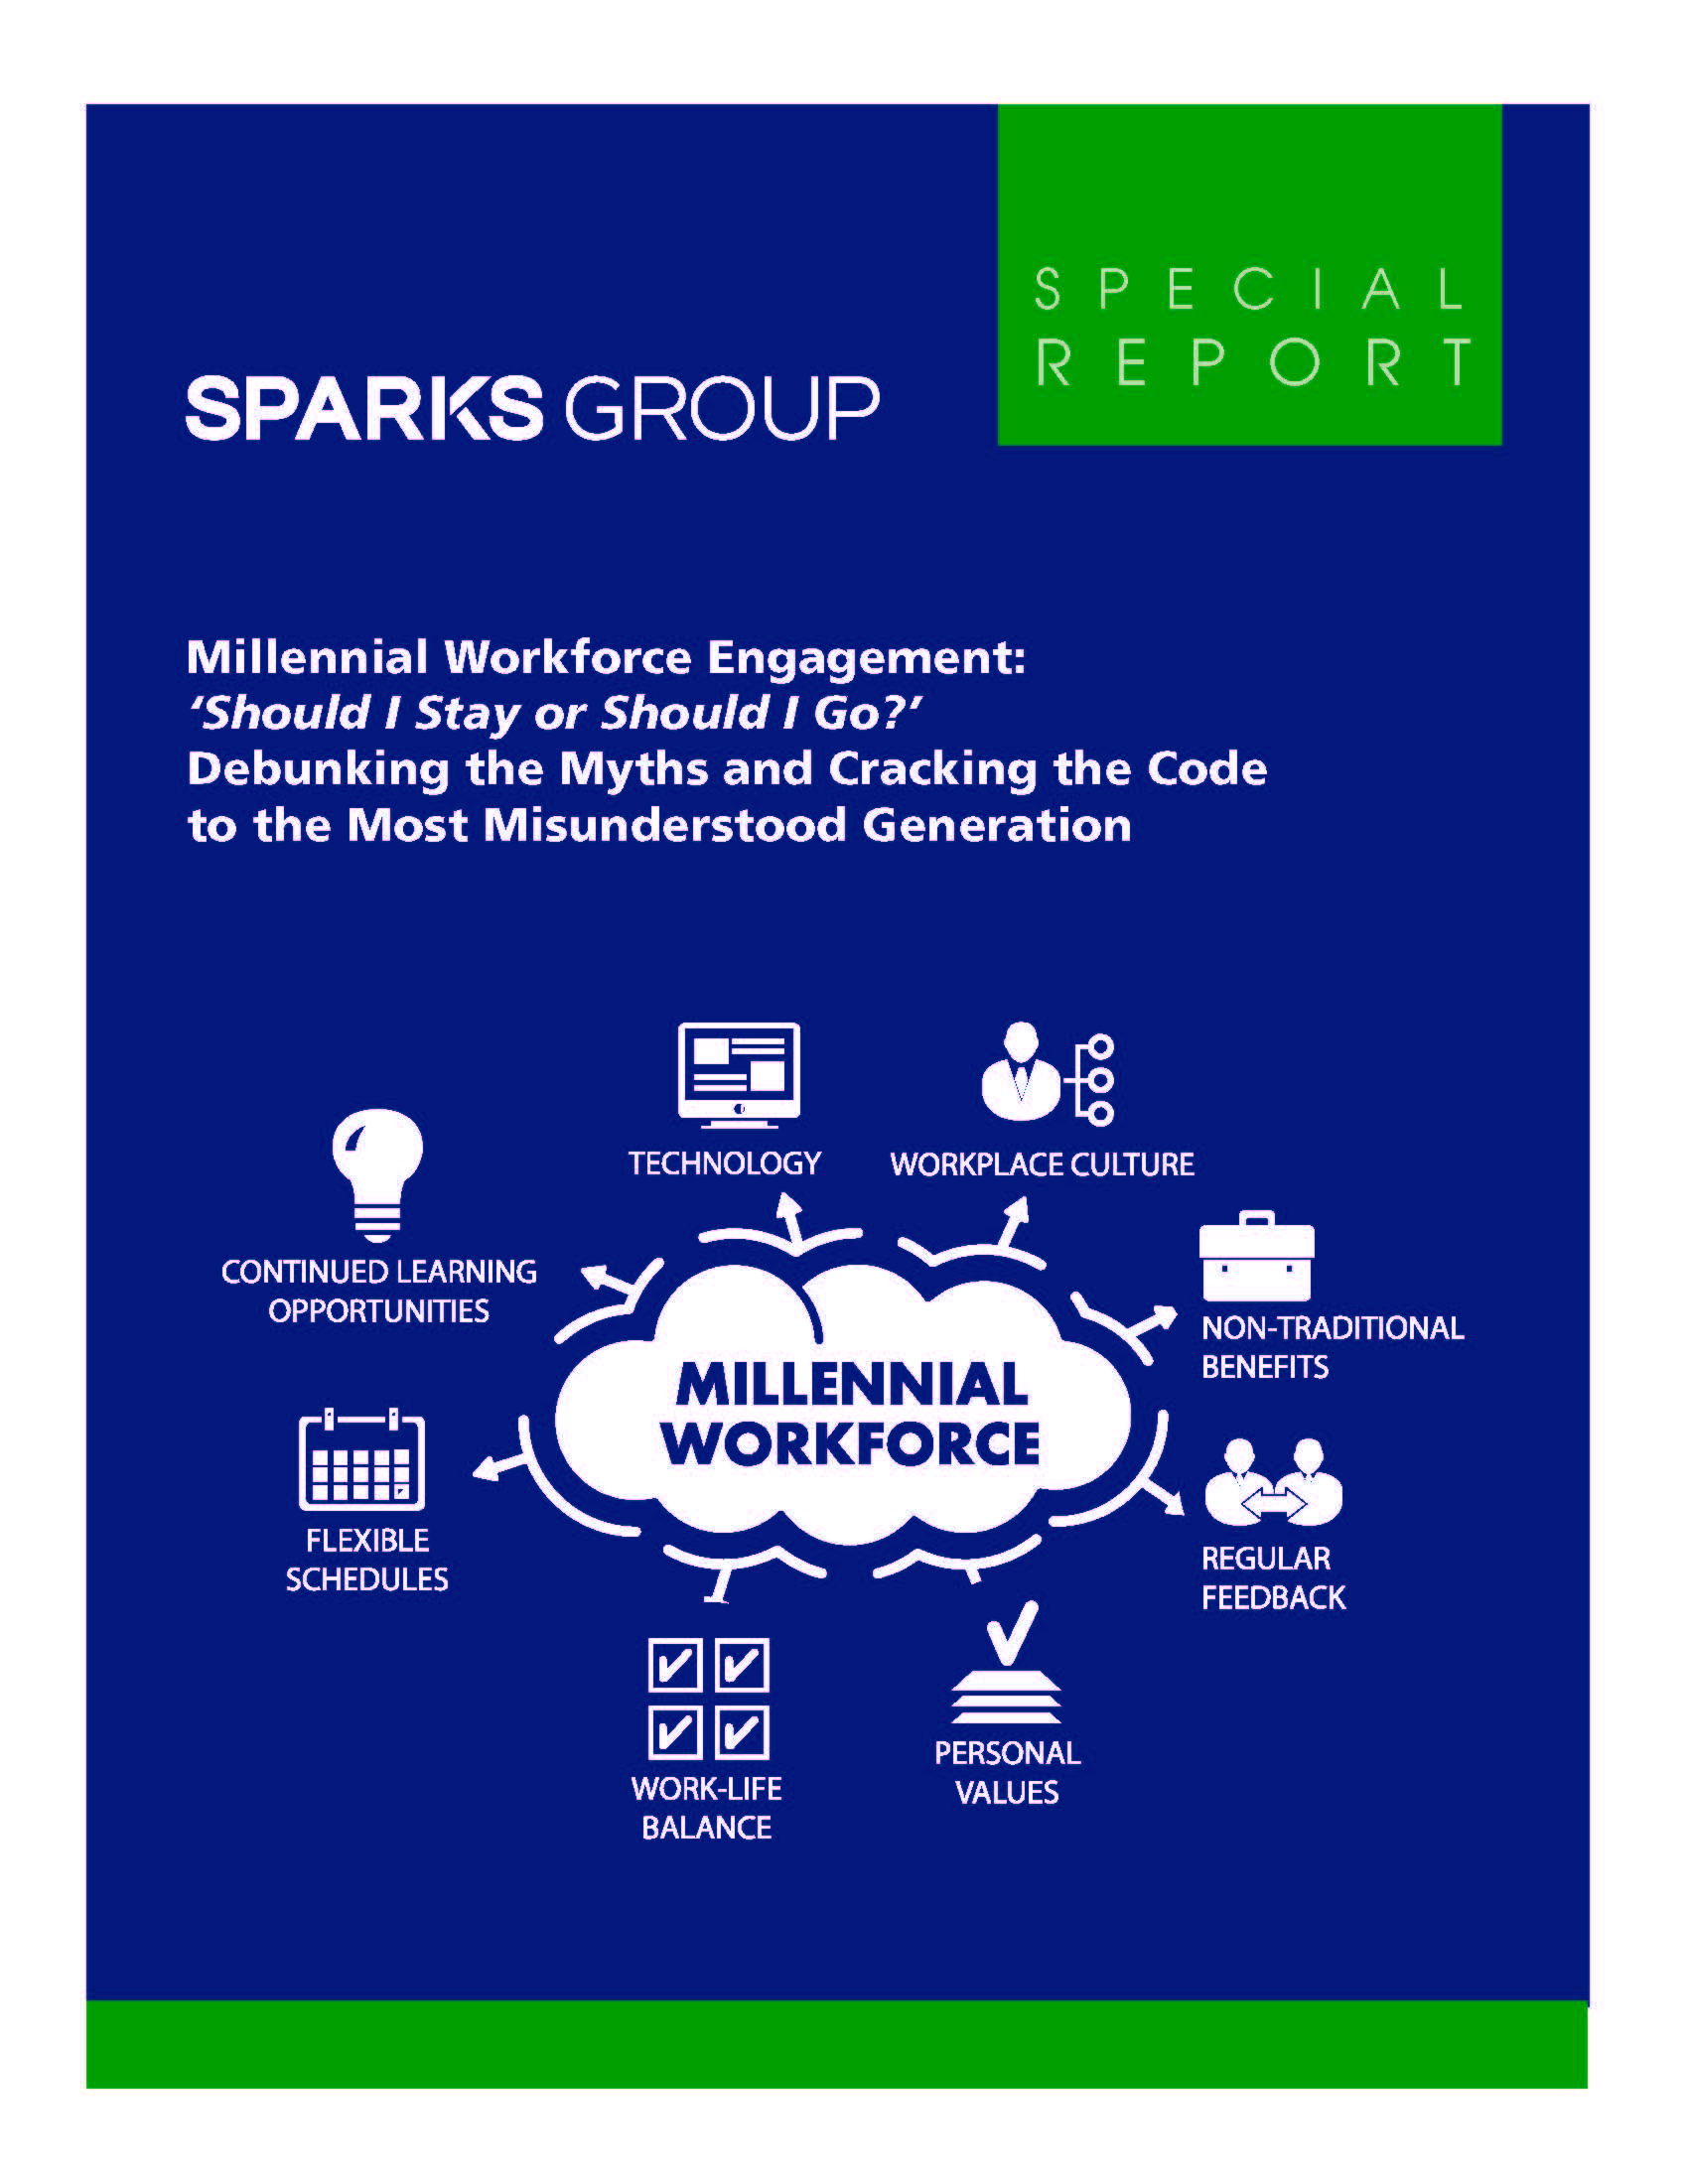 Millennial Workforce Engagement- Should I Stay or Should I Go - Debunking the Myths and Cracking the Code to the Most Misunderstood Generation - eBook